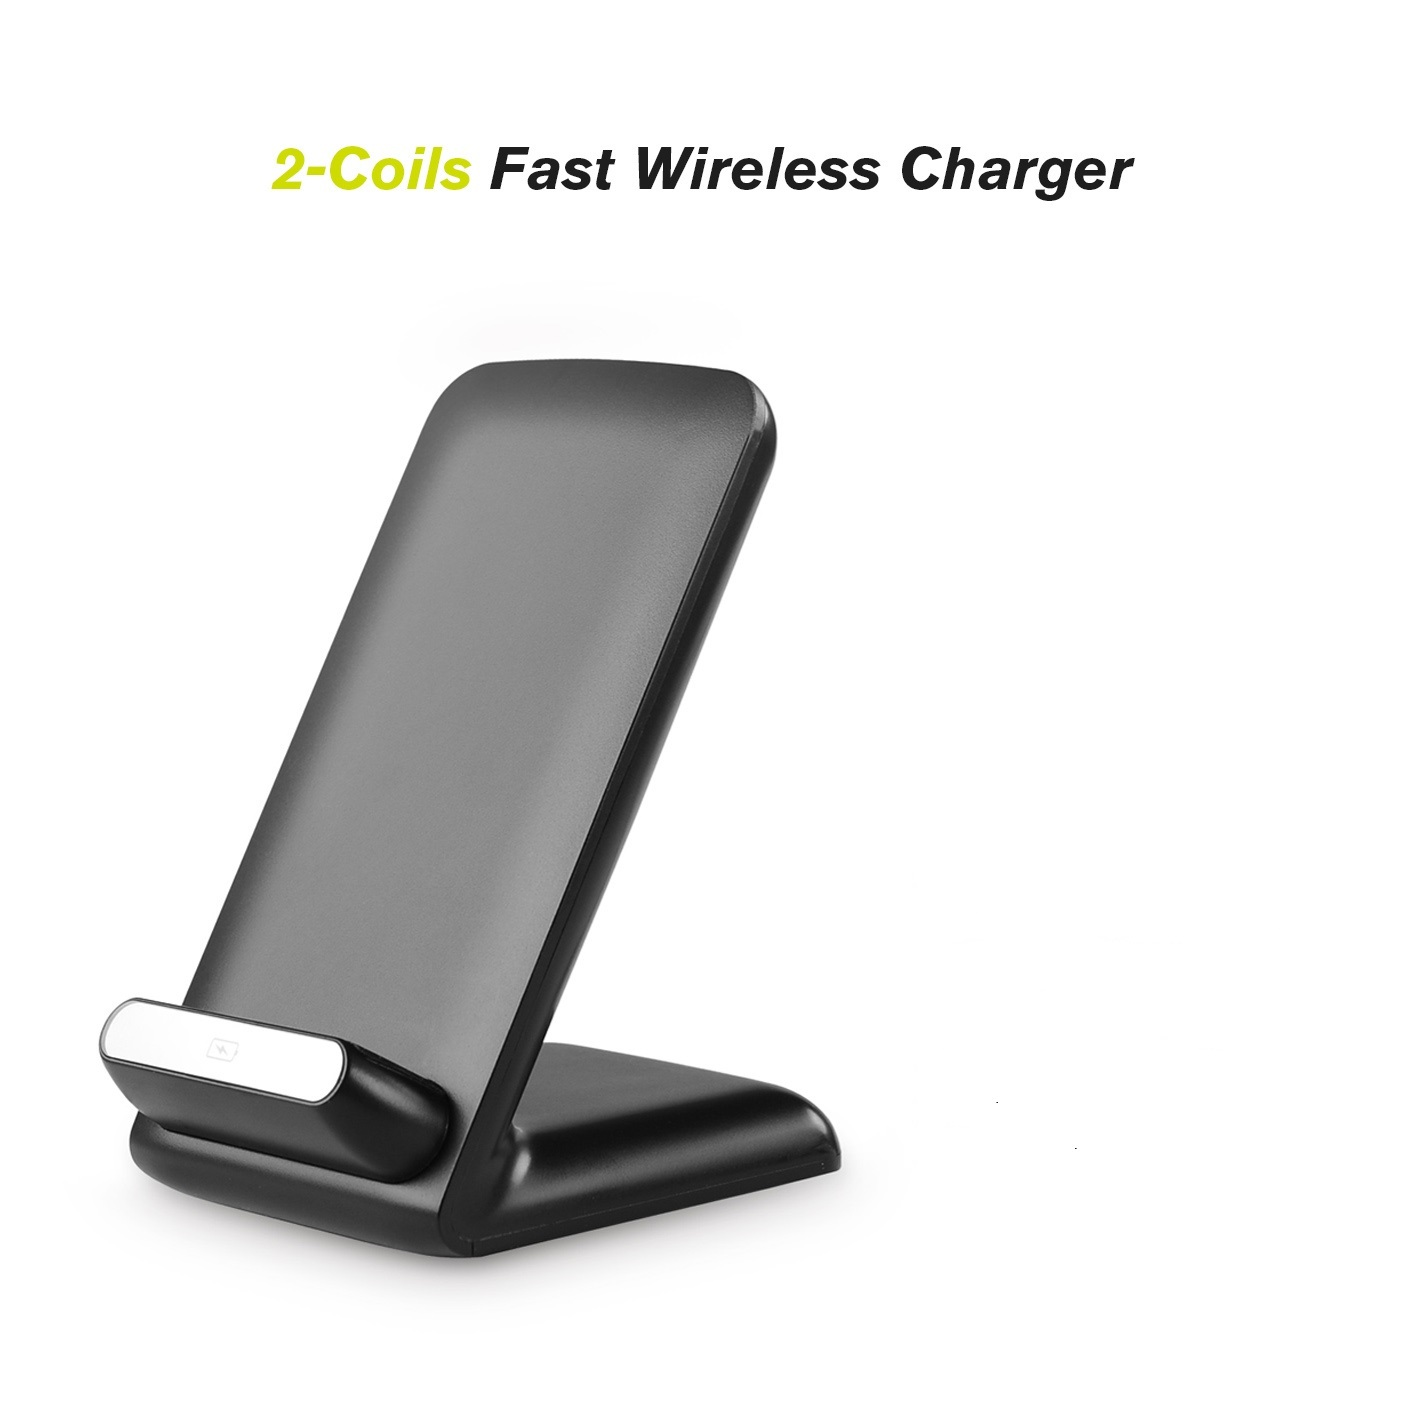 2-Coils Fast Wireless Charger